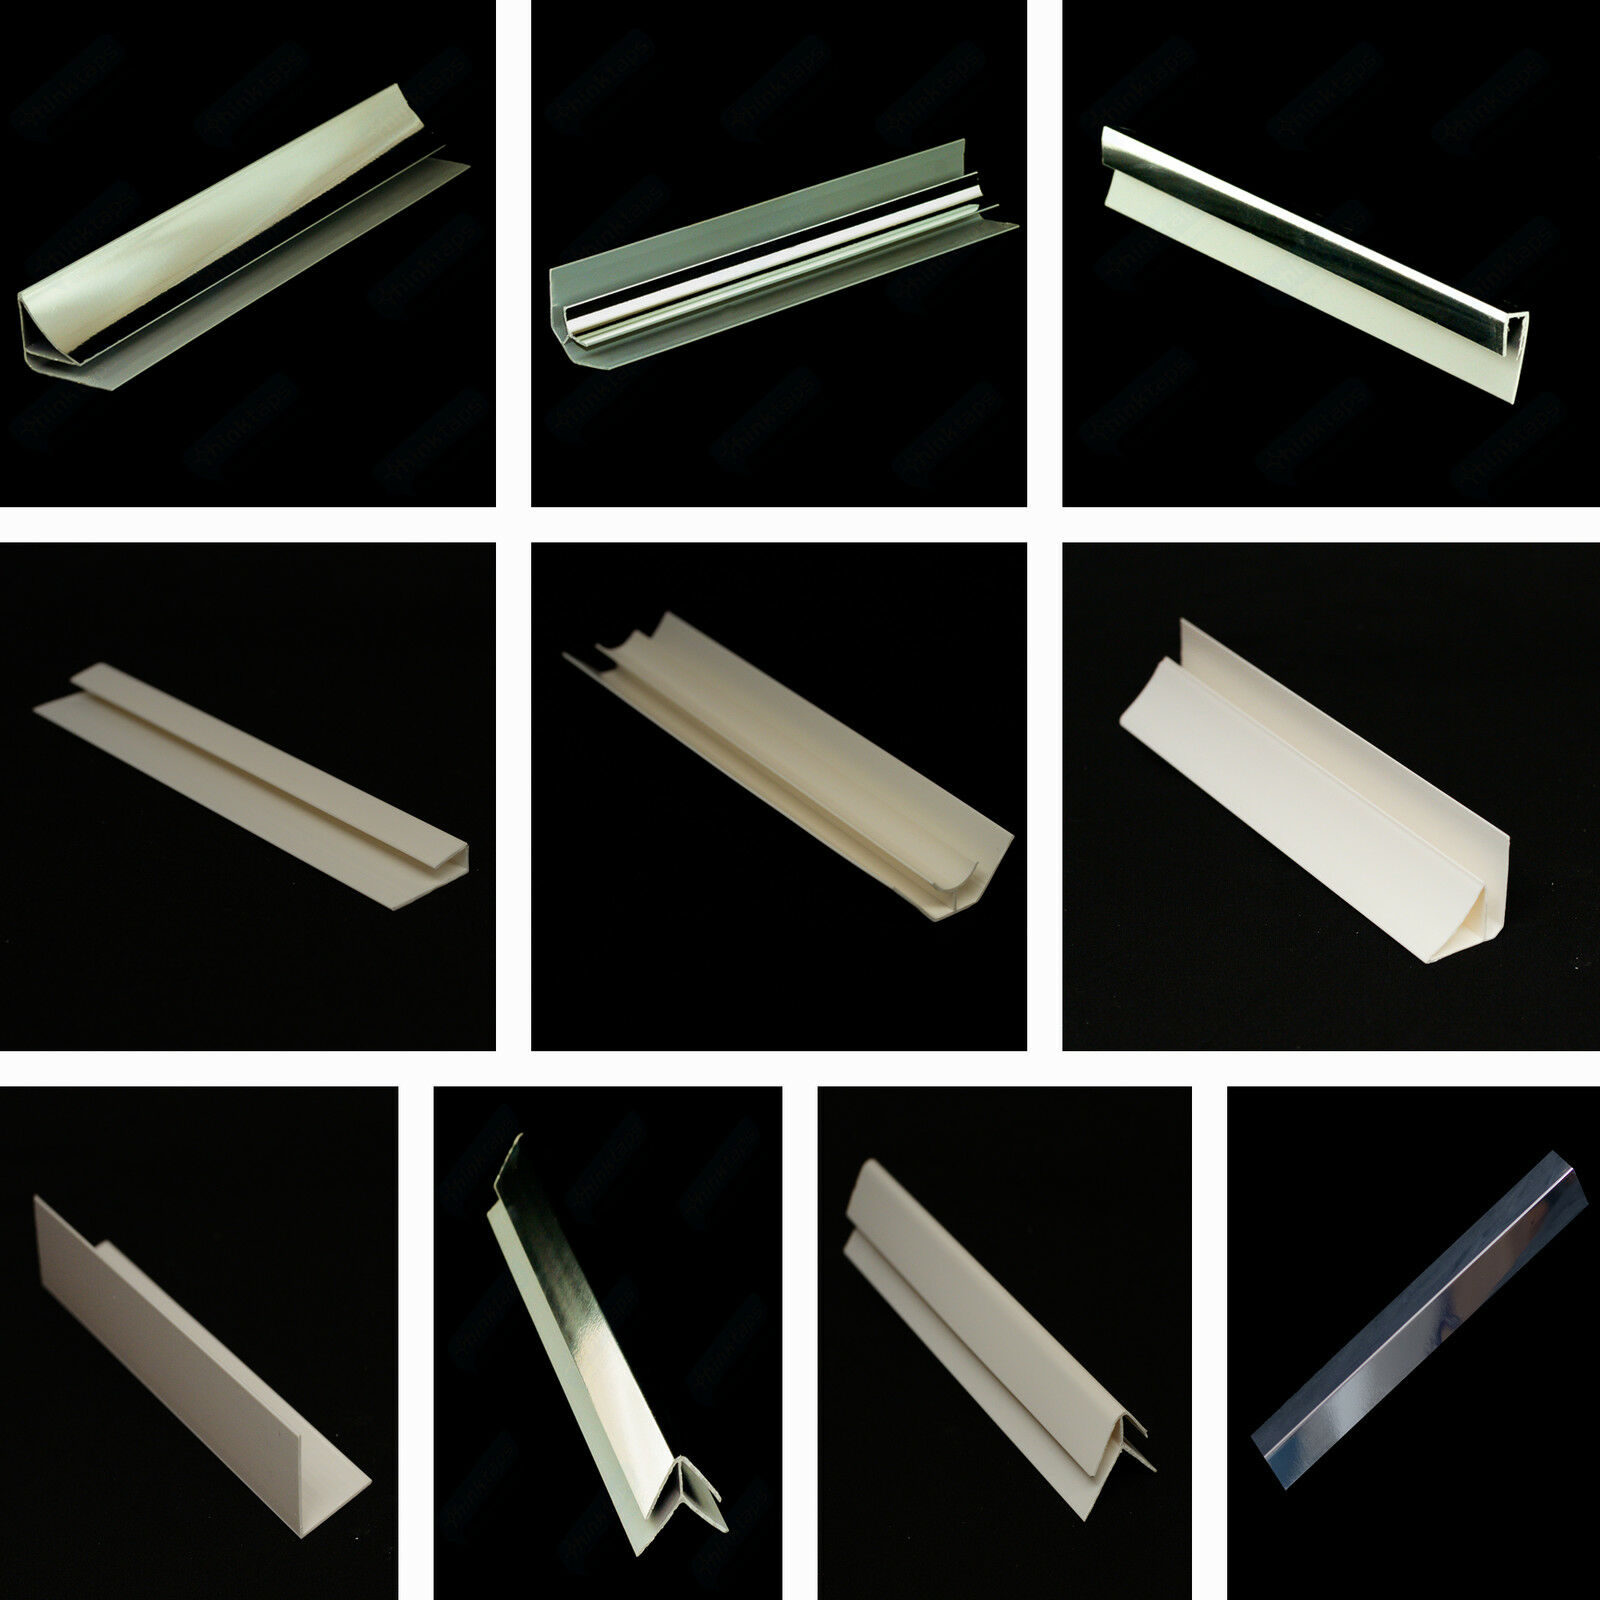 4 Chrome Quadrant Trims for PVC Wall /& Ceiling Panels Chrome PVC Corner Trims